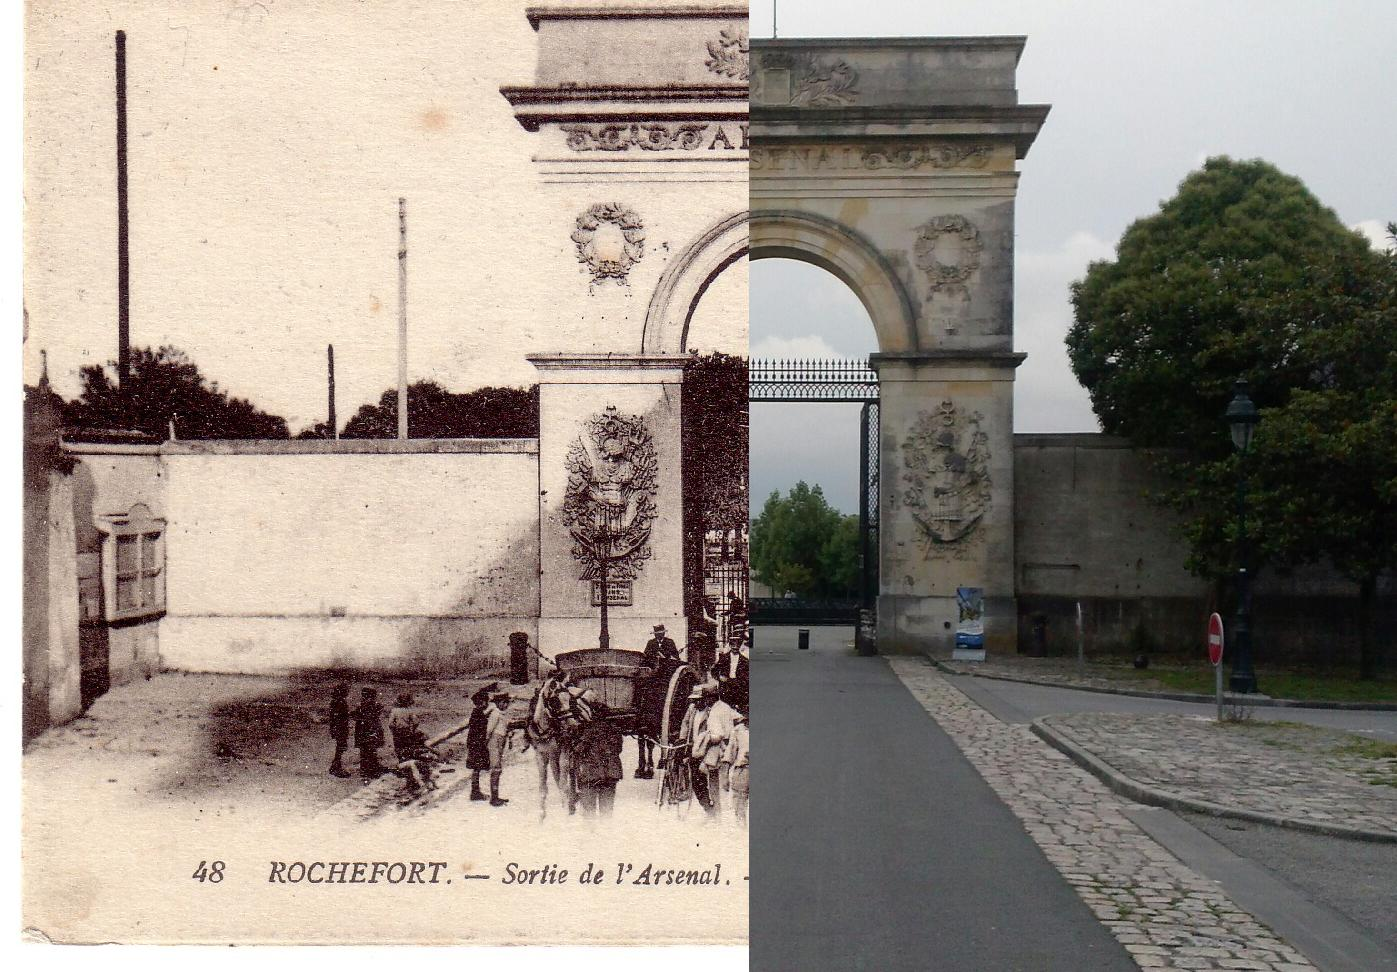 Rochefort - L'Arsenal